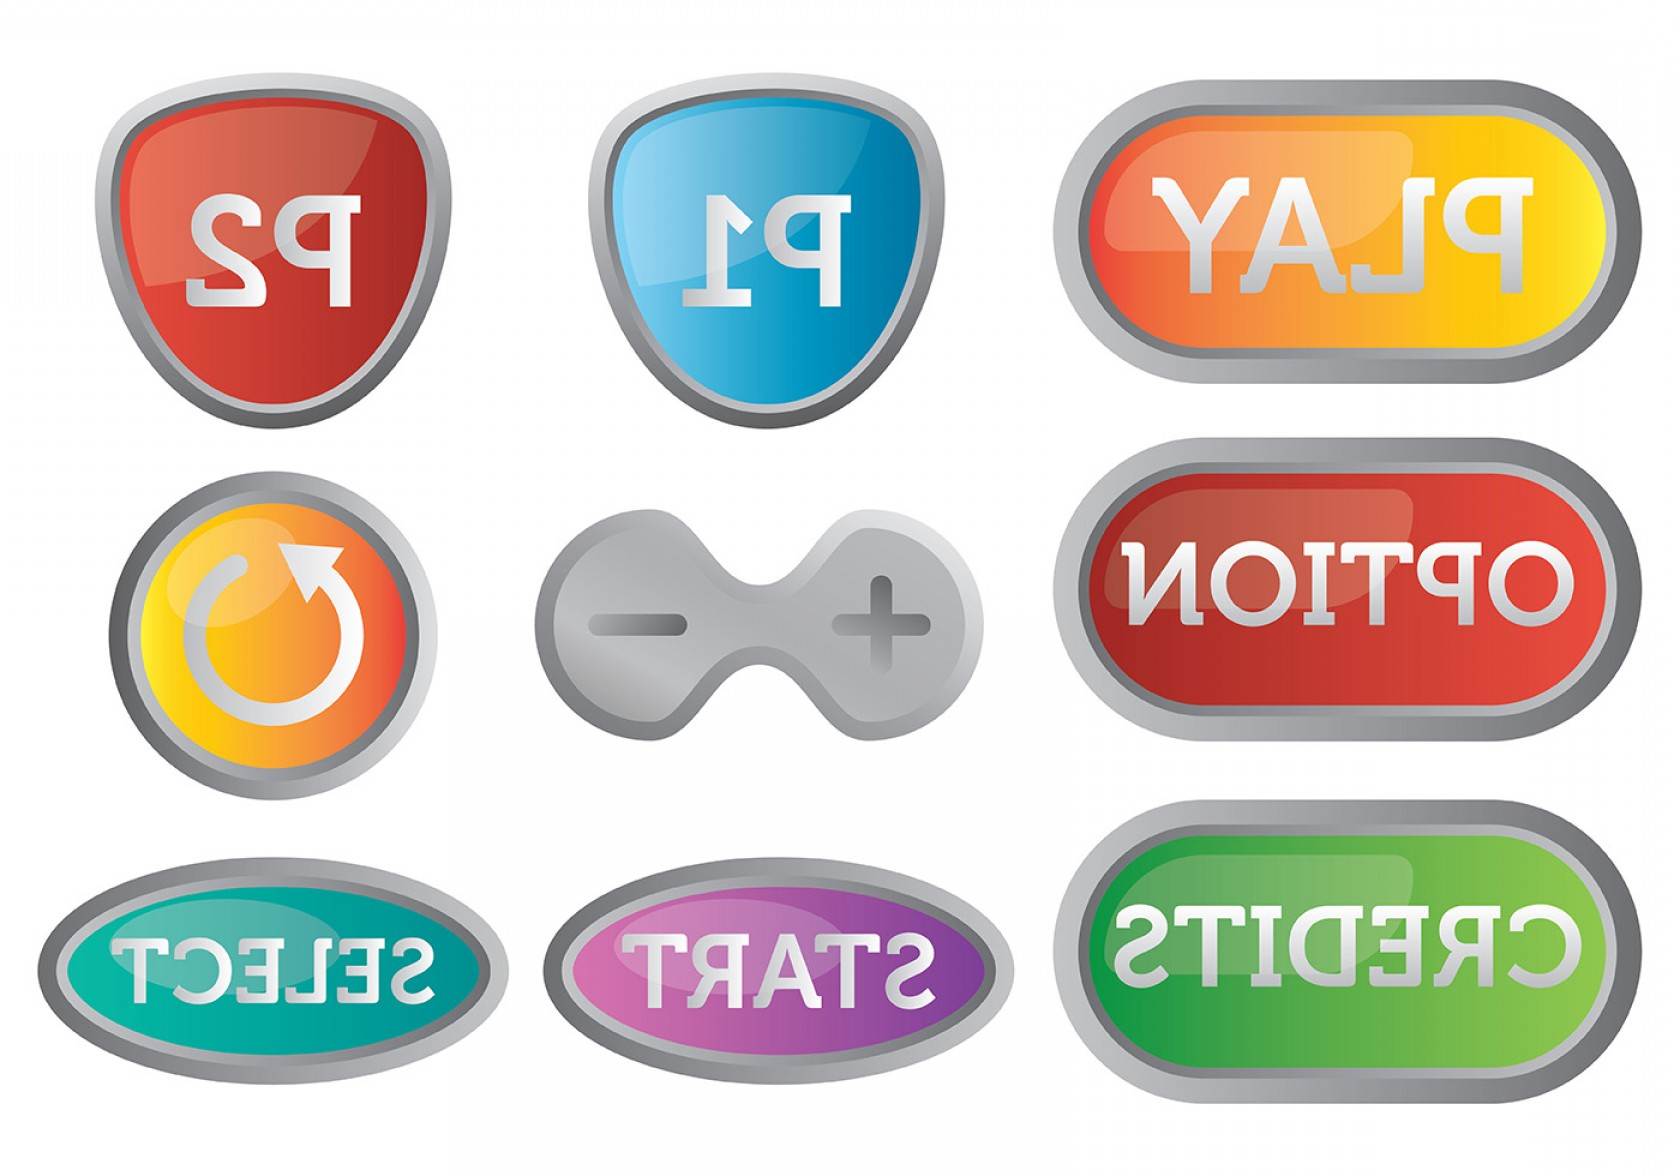 Contact Button Icons Vector Free: Free Arcade Button Icons Vector